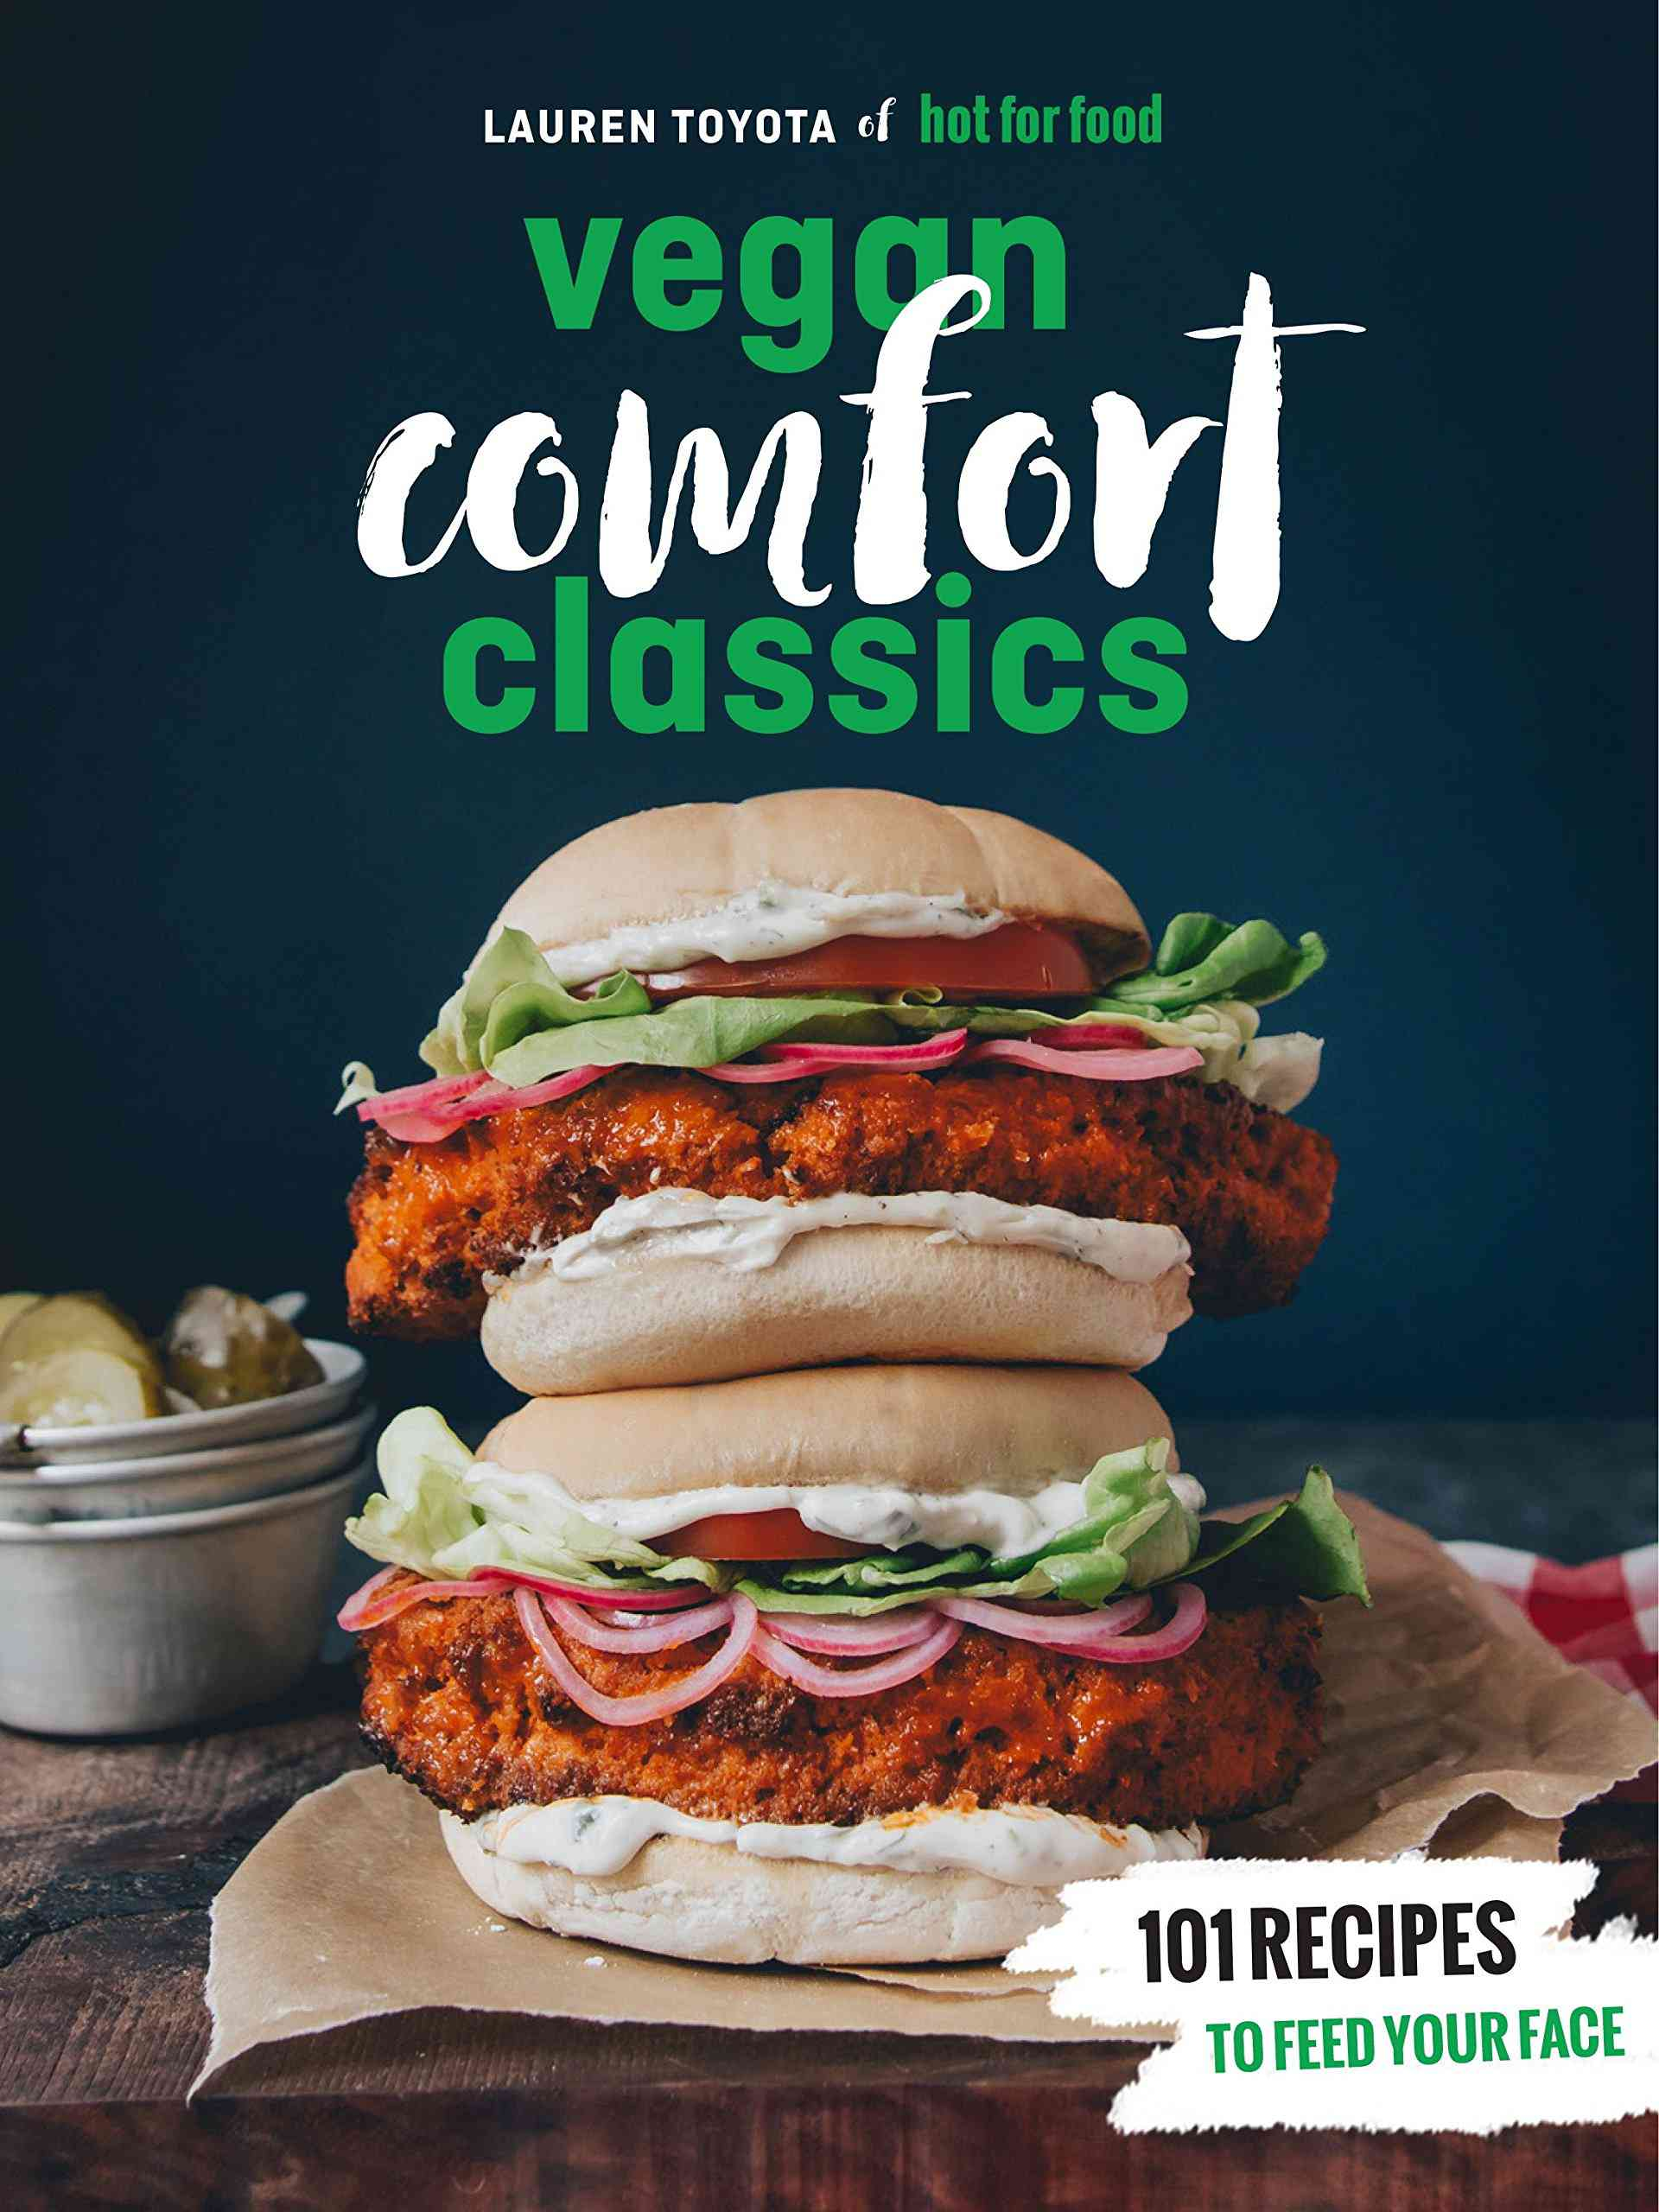 Hot for Vegan Comfort Classics